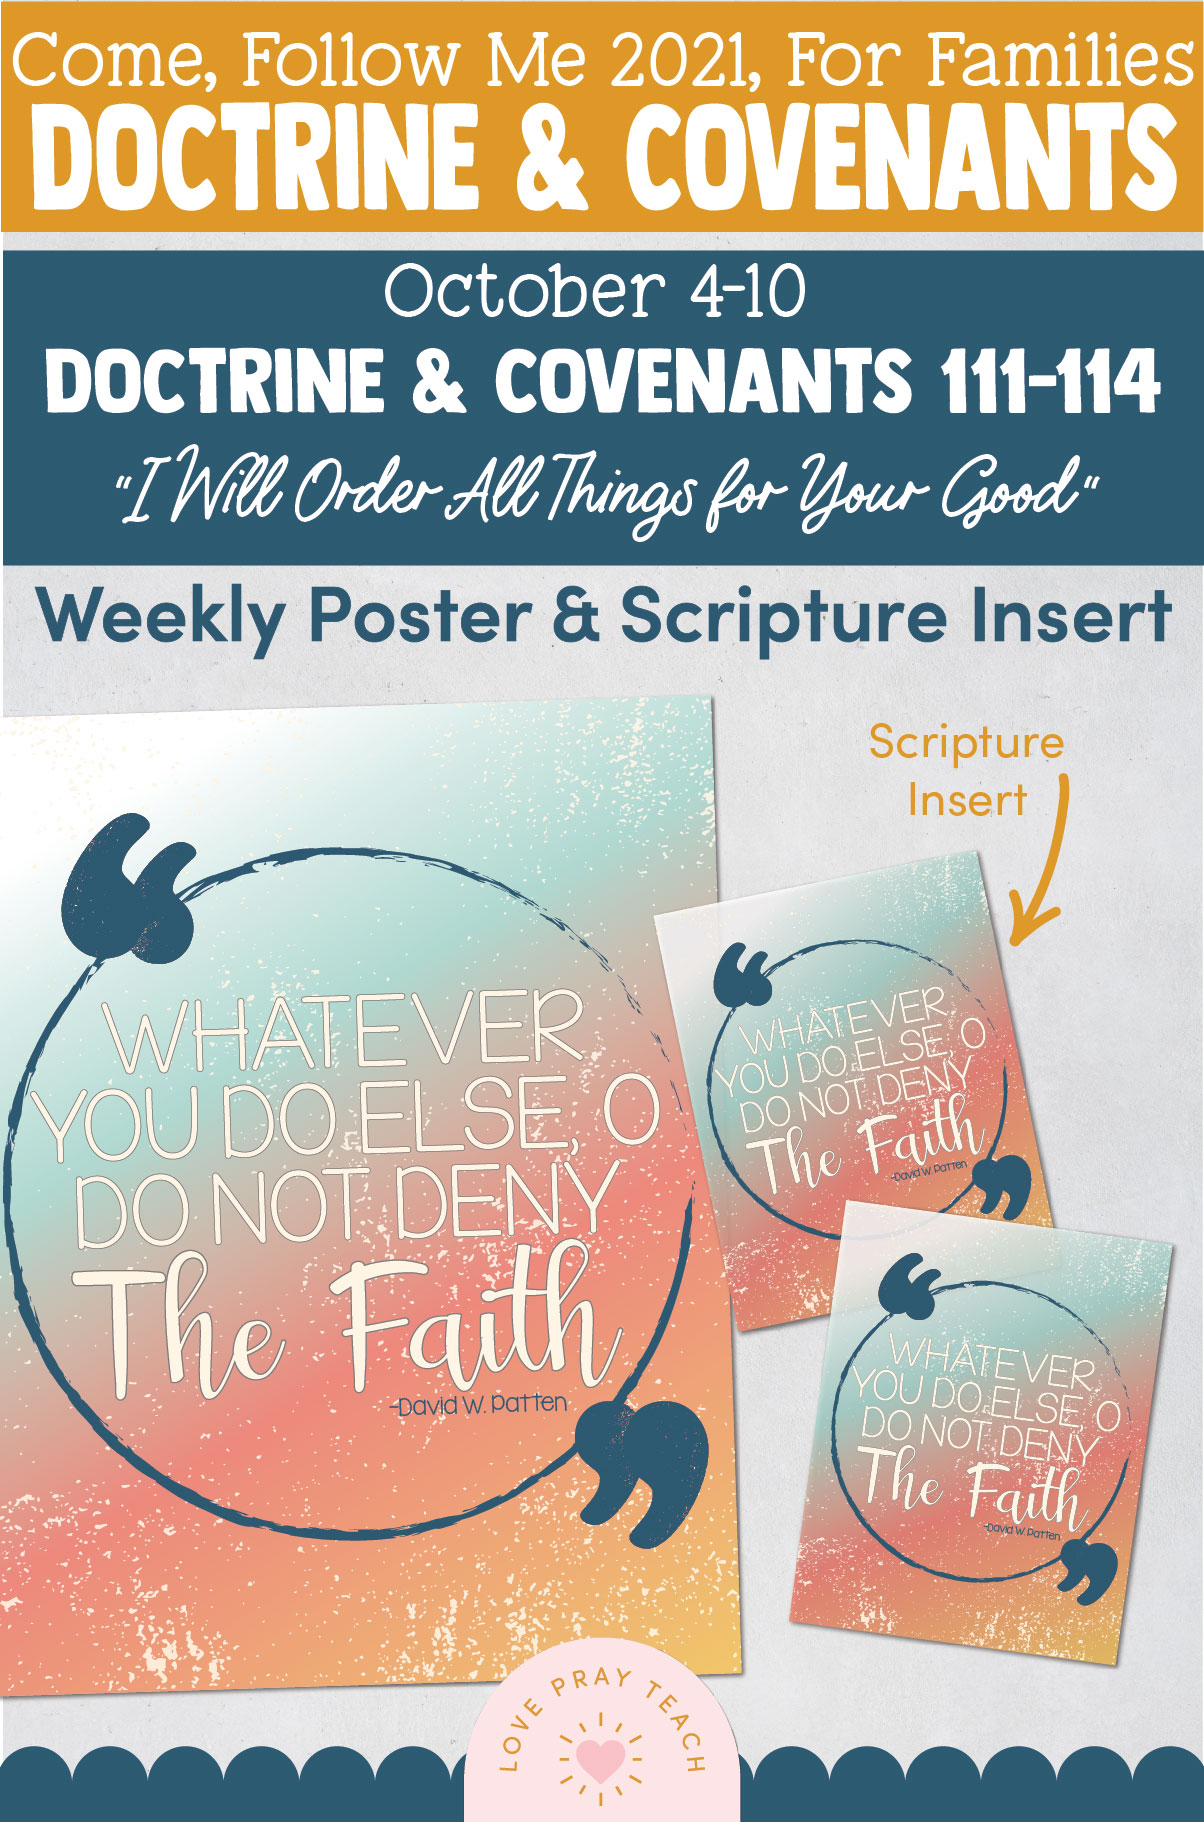 """Come, Follow Me—For Individuals and Families: Doctrine And Covenants 2021, October Week 2 Doctrine and Covenants 111-114:-October 4-10, """"I Will Order All Things for Your Good"""""""